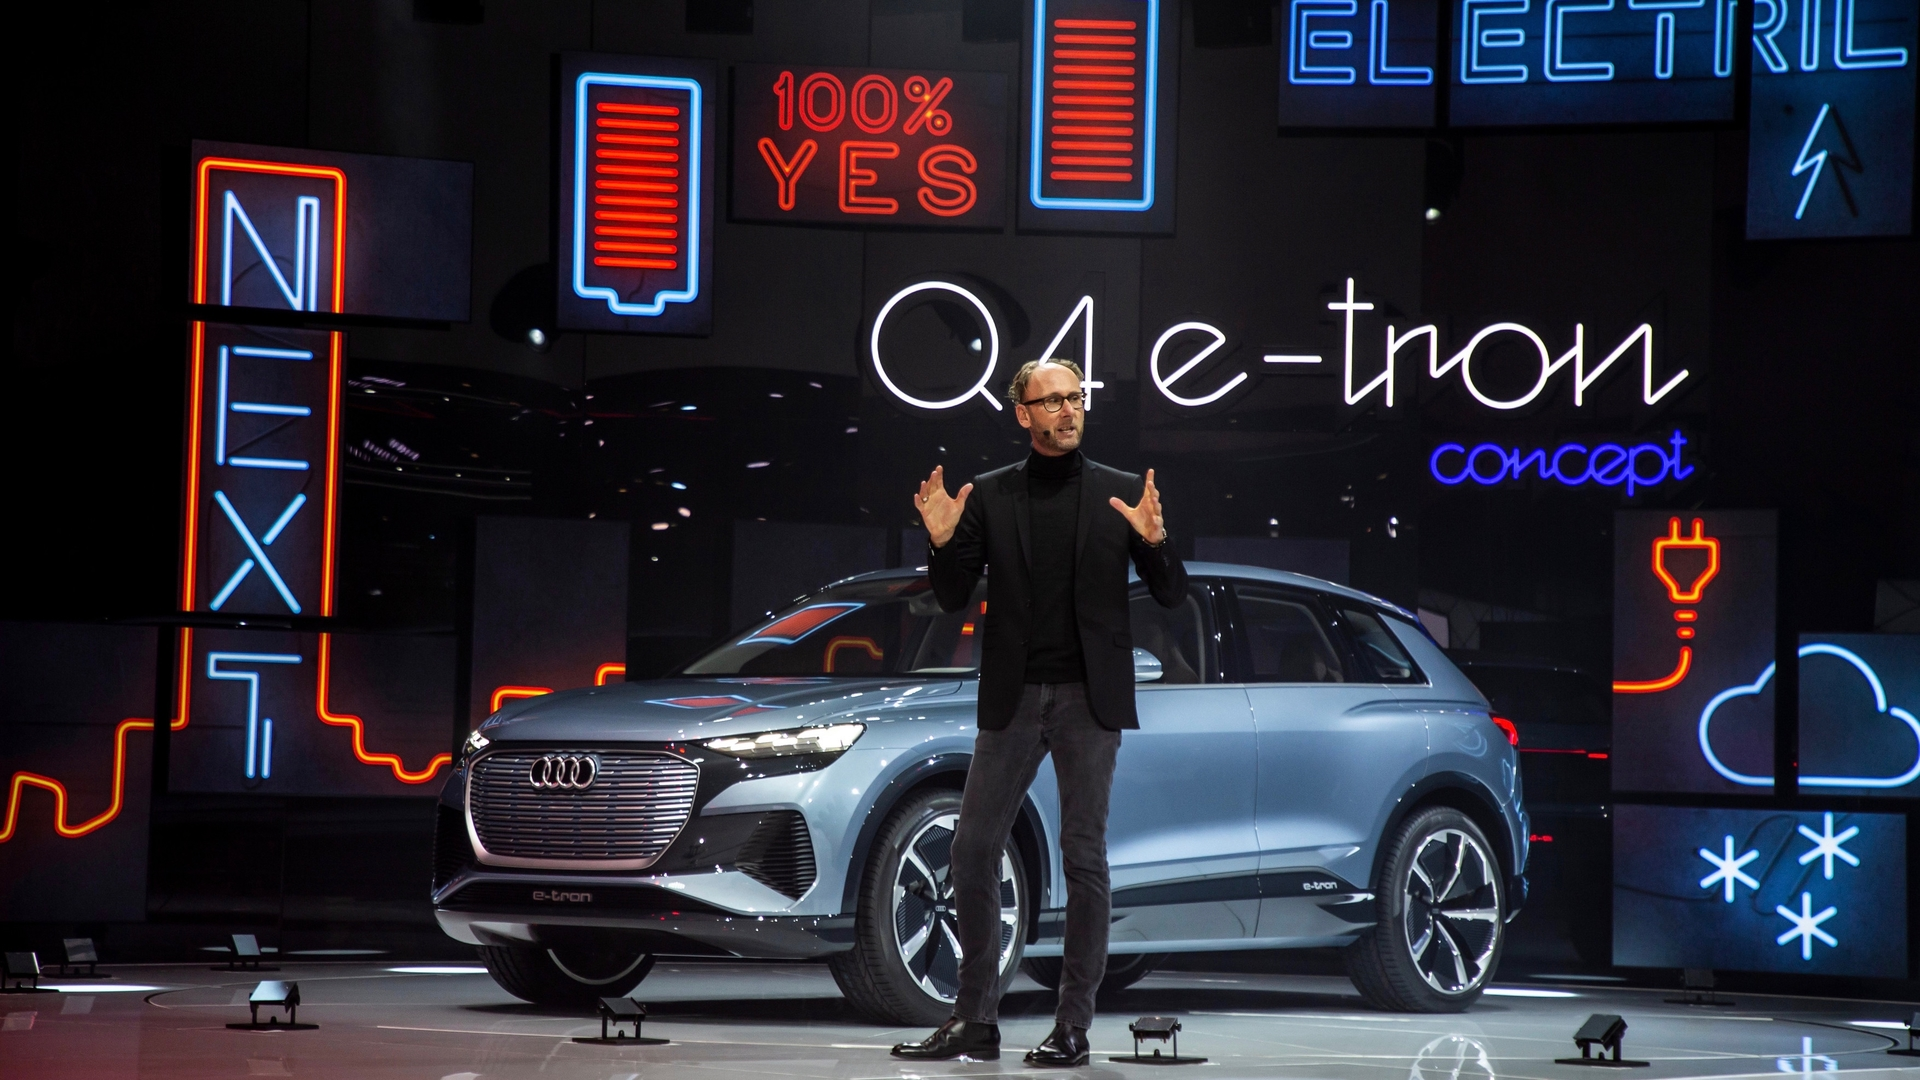 Audi Press Conference at the 2019 Geneva Motor Show